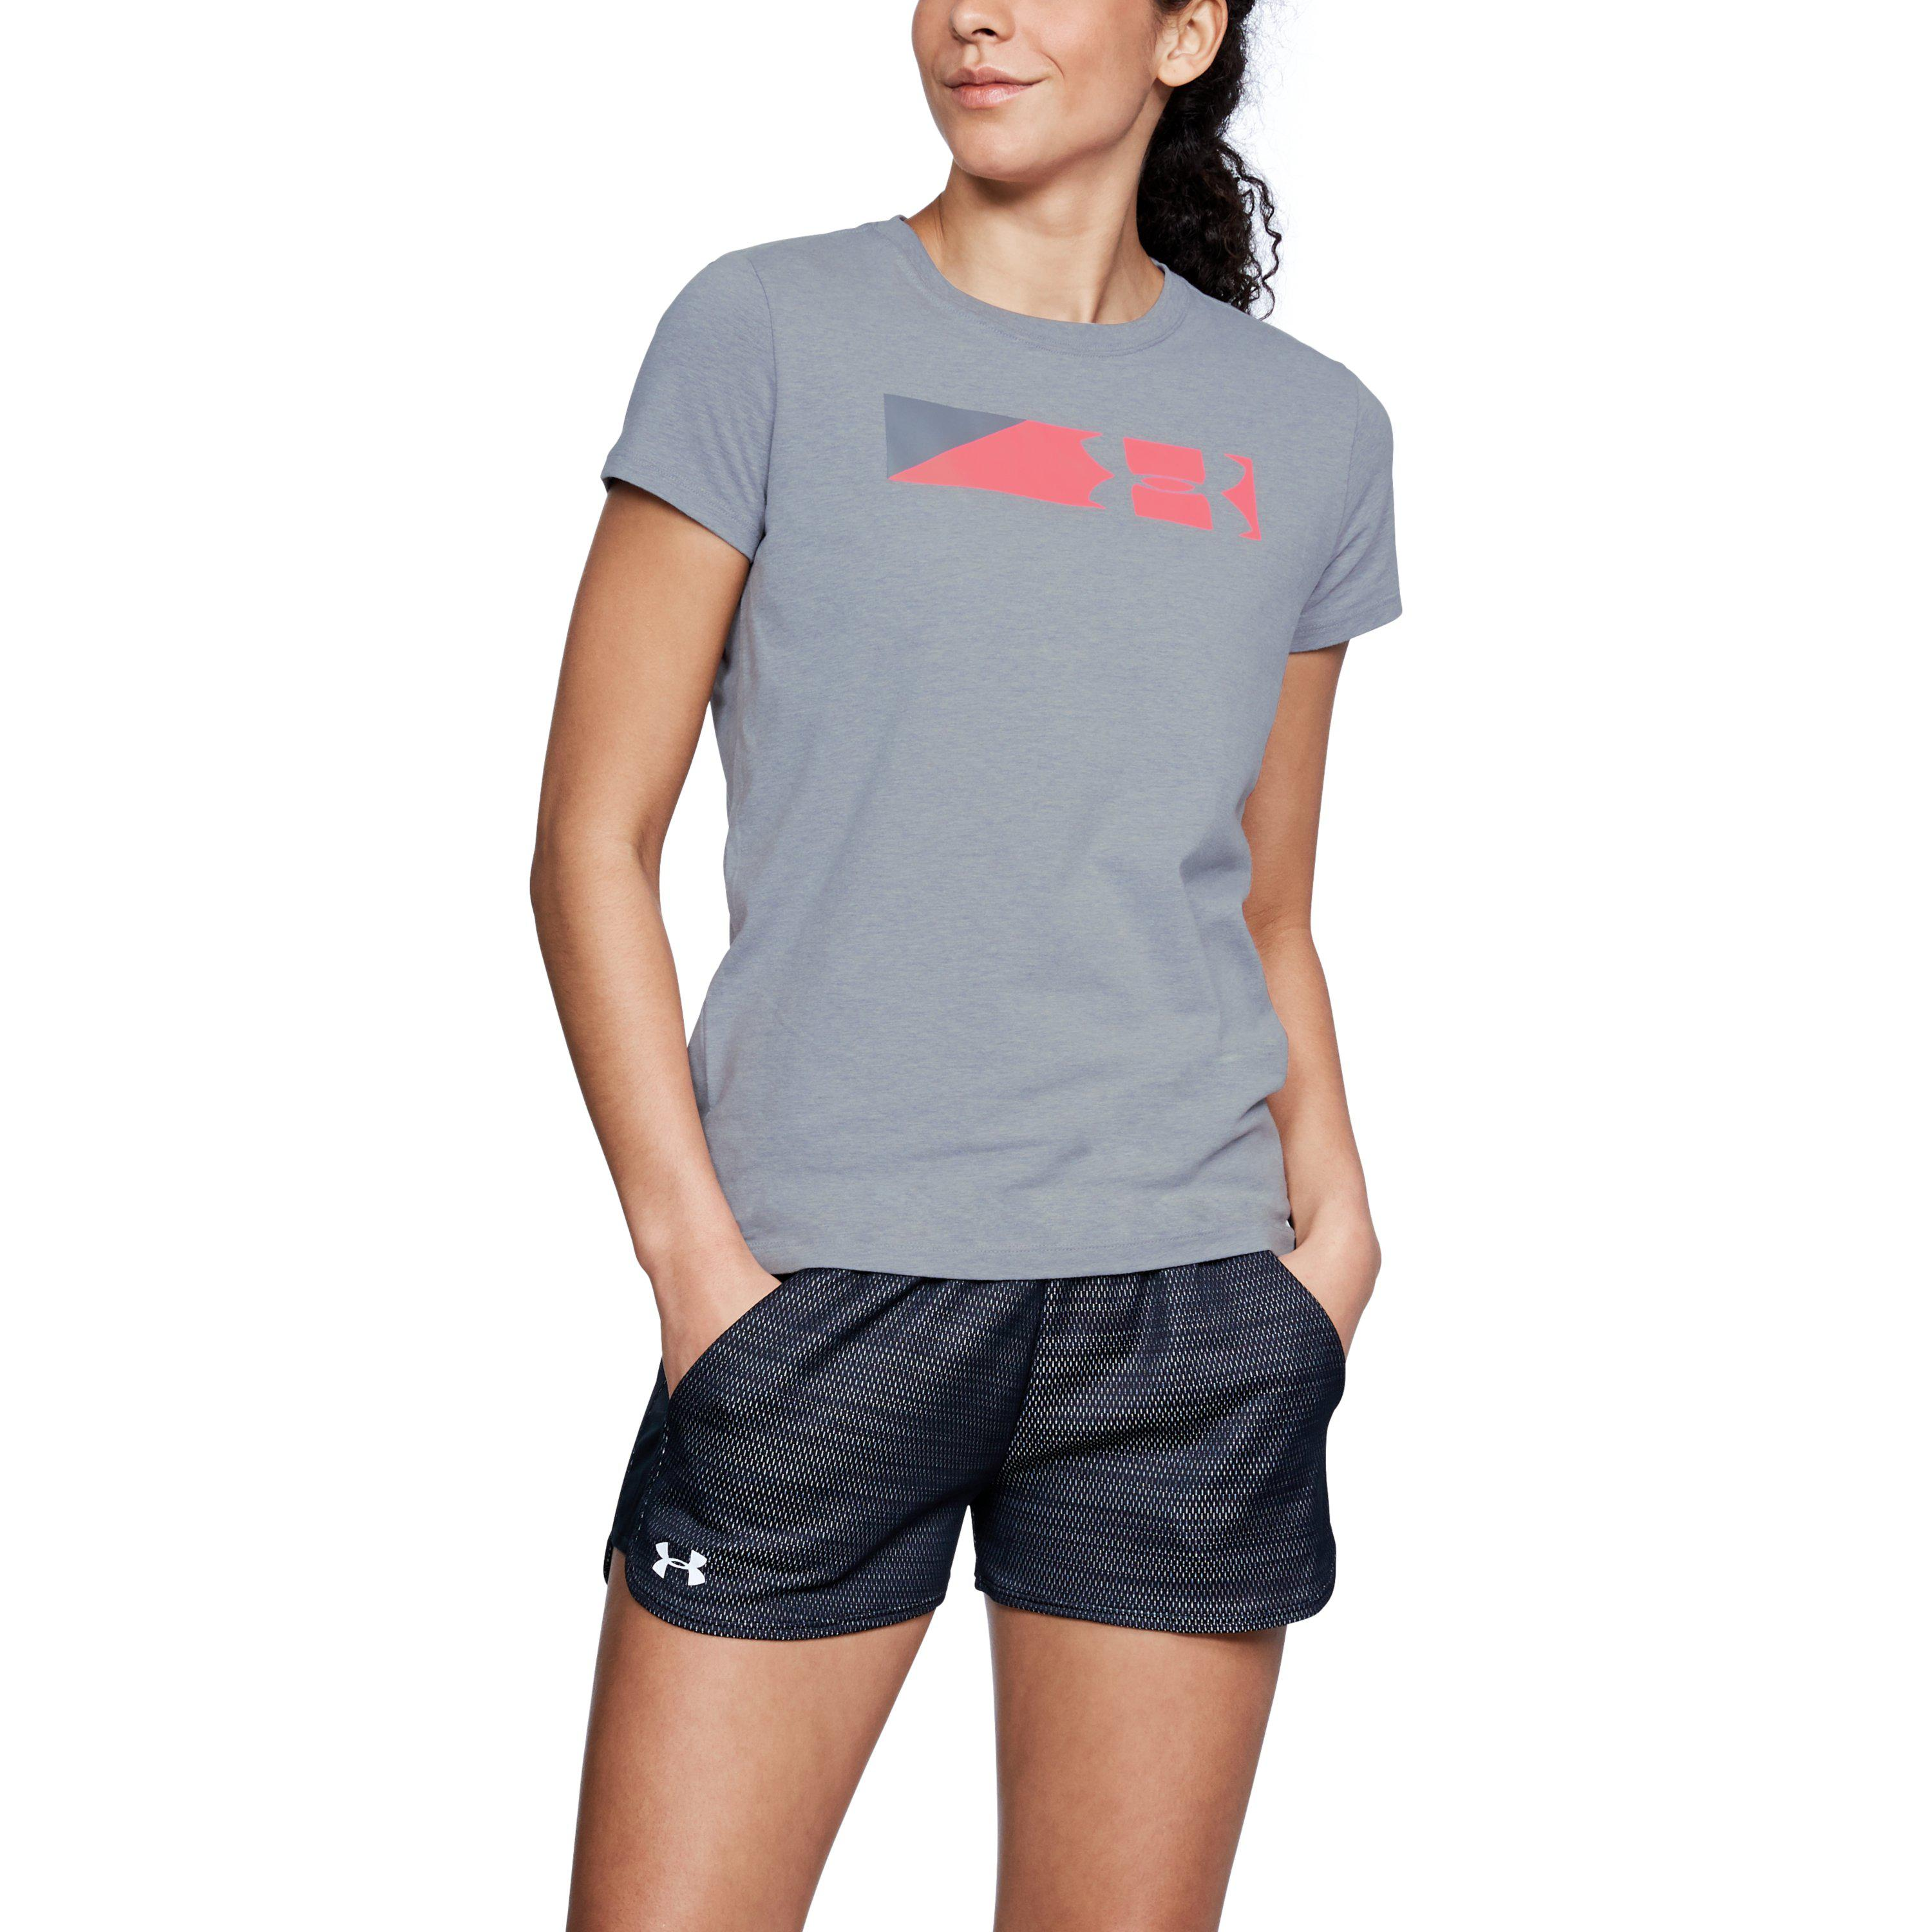 Cheap Looking For Under Armour Women's UA Sportstyle Branded Graphic T-Shirt Discount Visa Payment Discount Reliable Marketable For Sale BpoD3